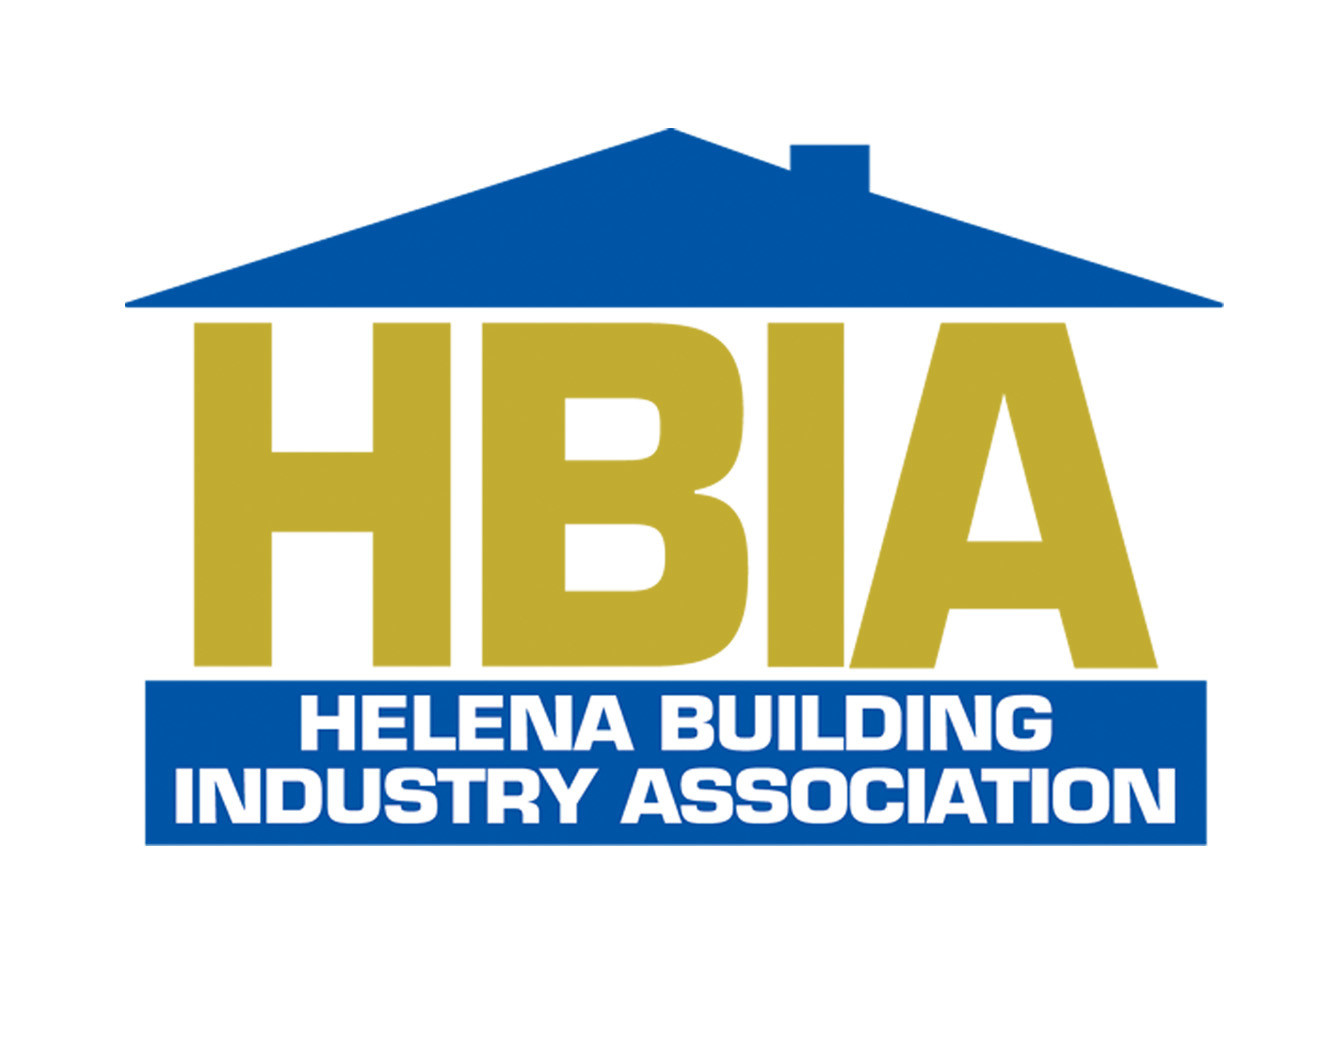 Helena Building Industry Association